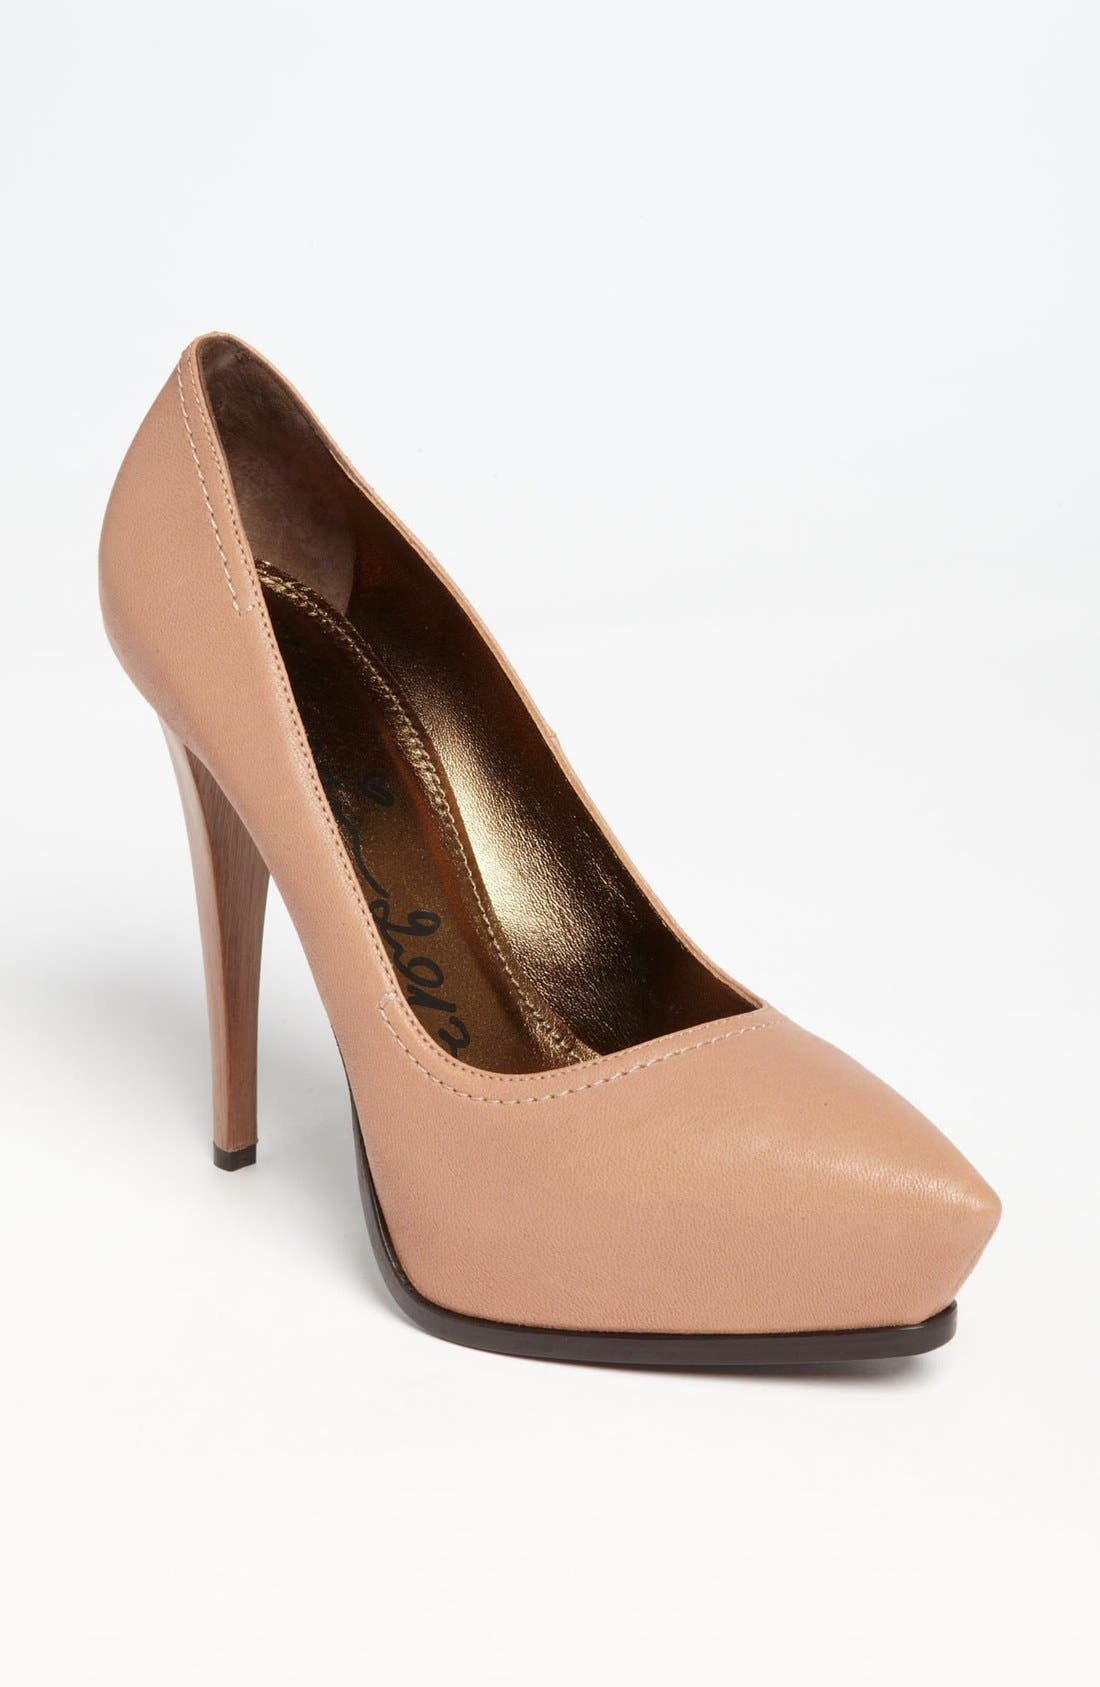 Main Image - Lanvin Stiletto Pump